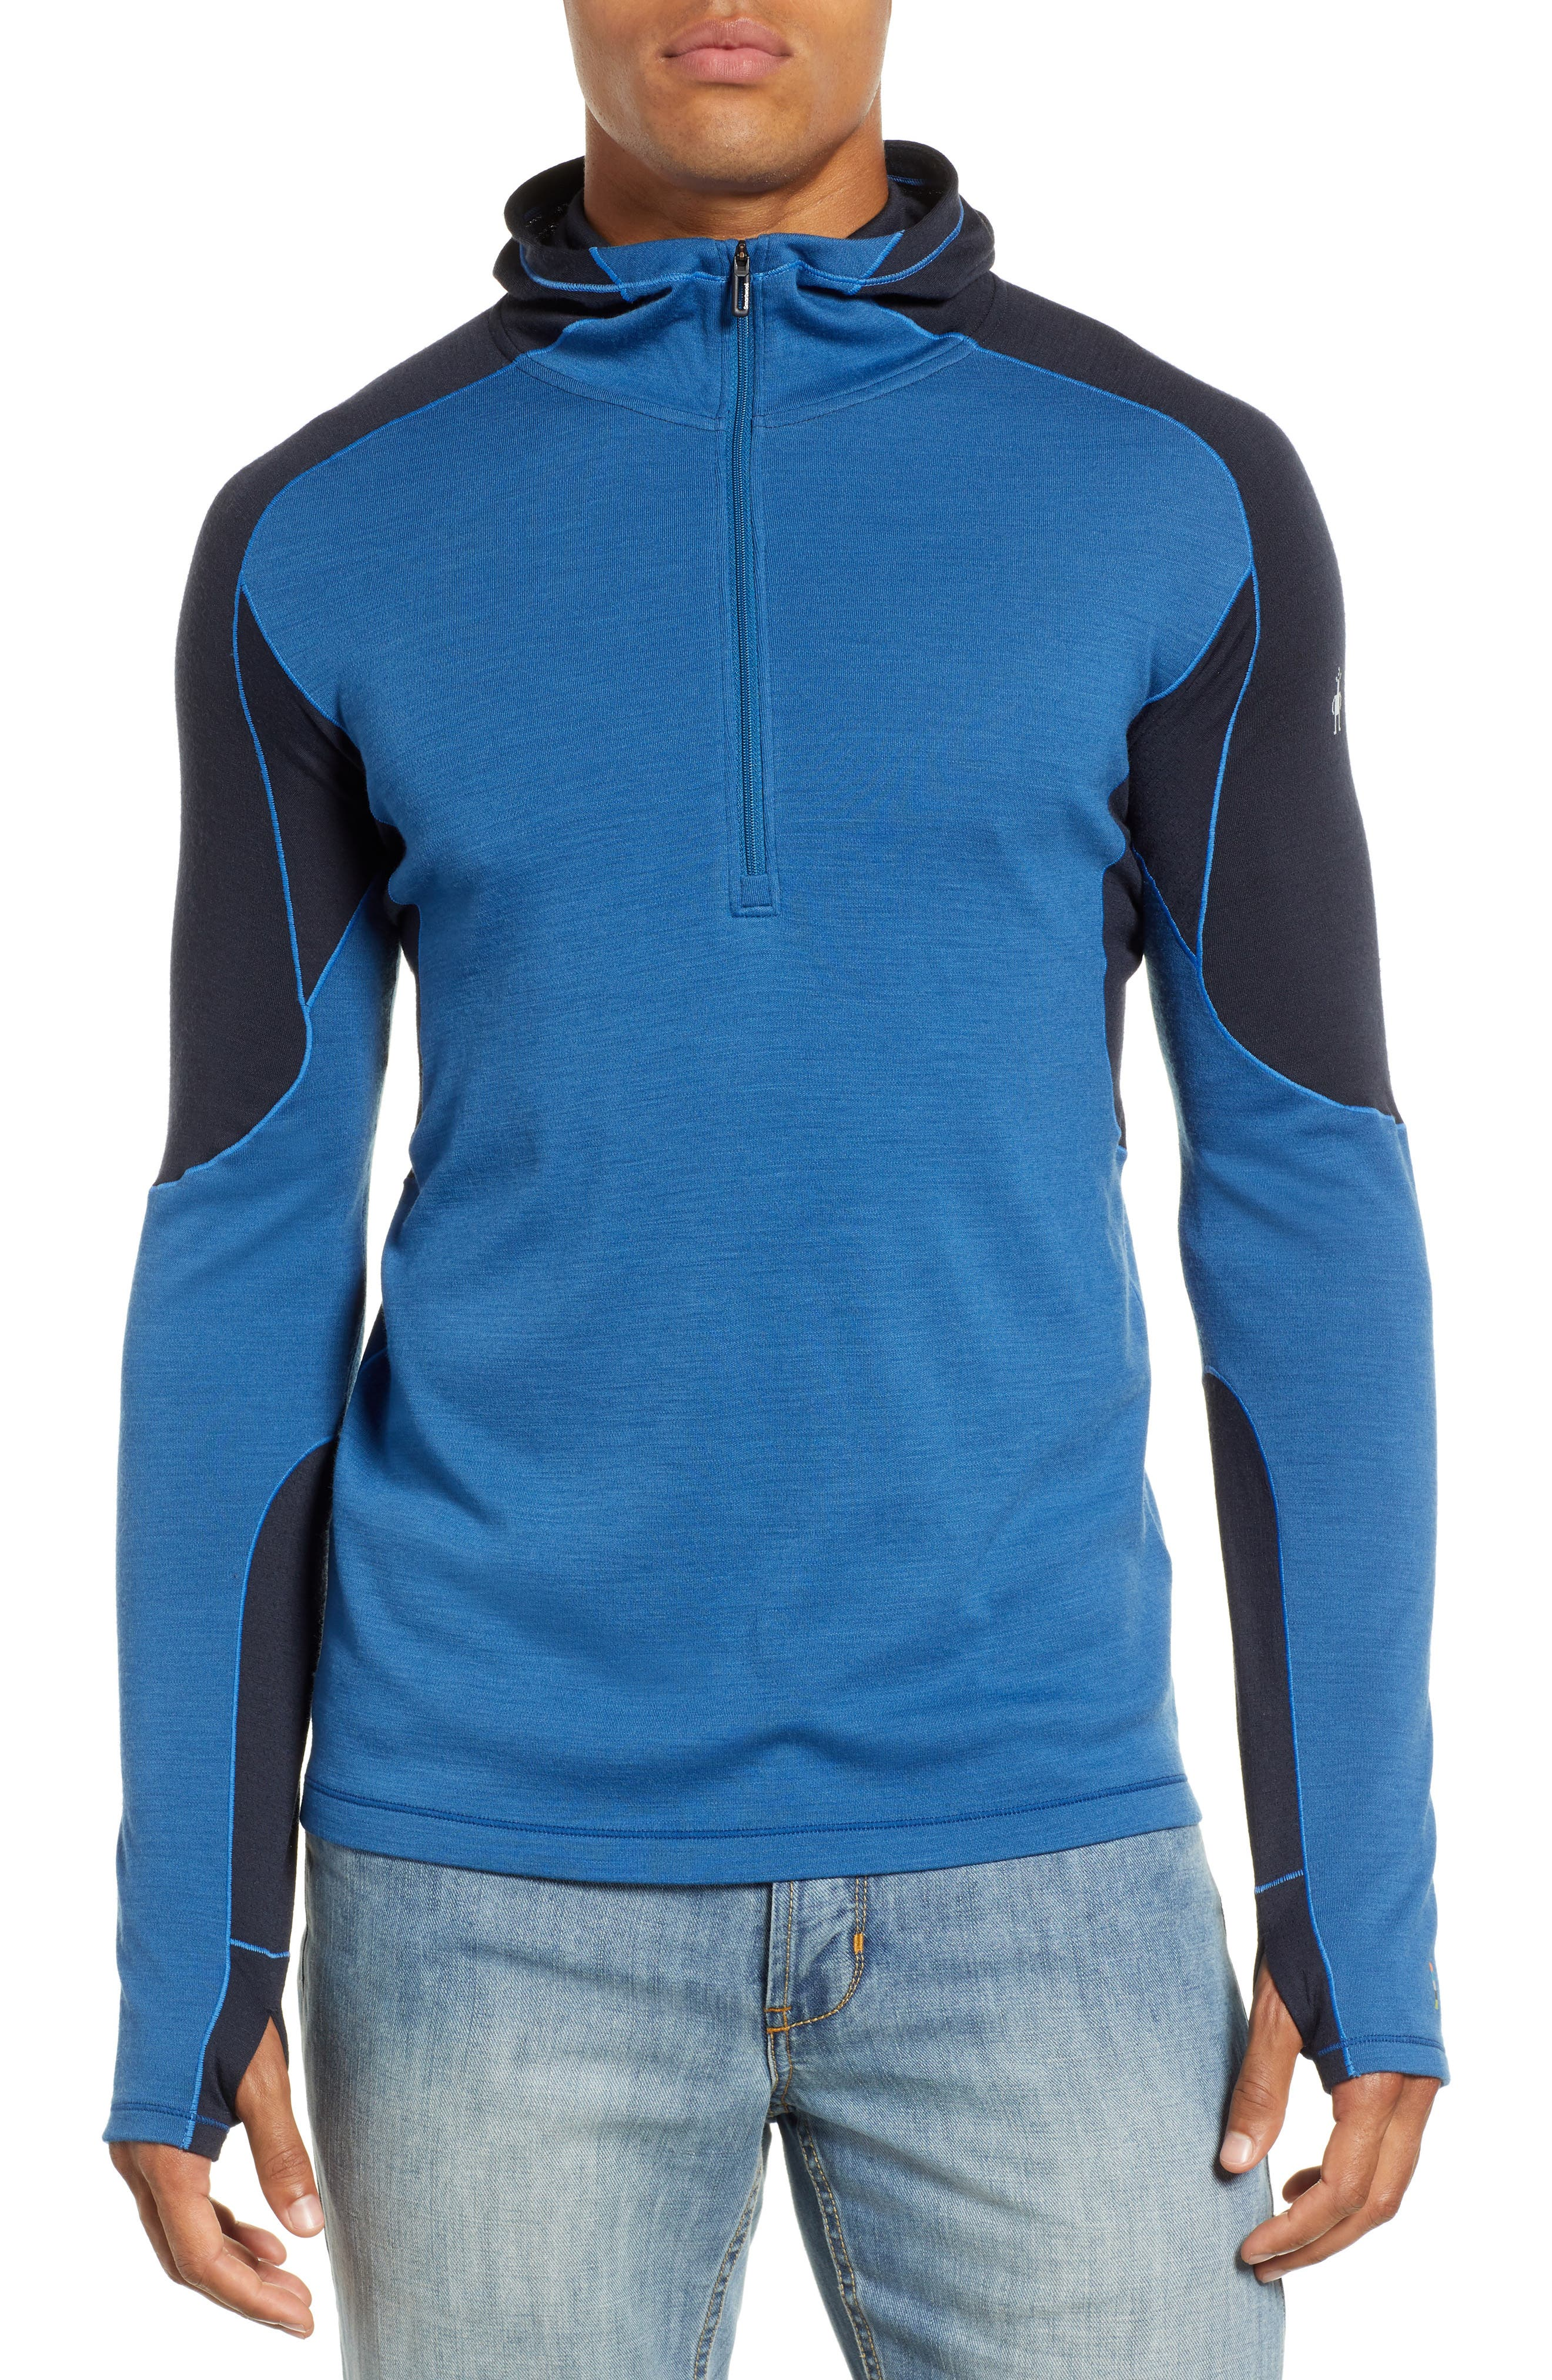 PhD<sup>®</sup> Light Merino Wool Blend Hooded Pullover,                         Main,                         color, BRIGHT COBALT HEATHER